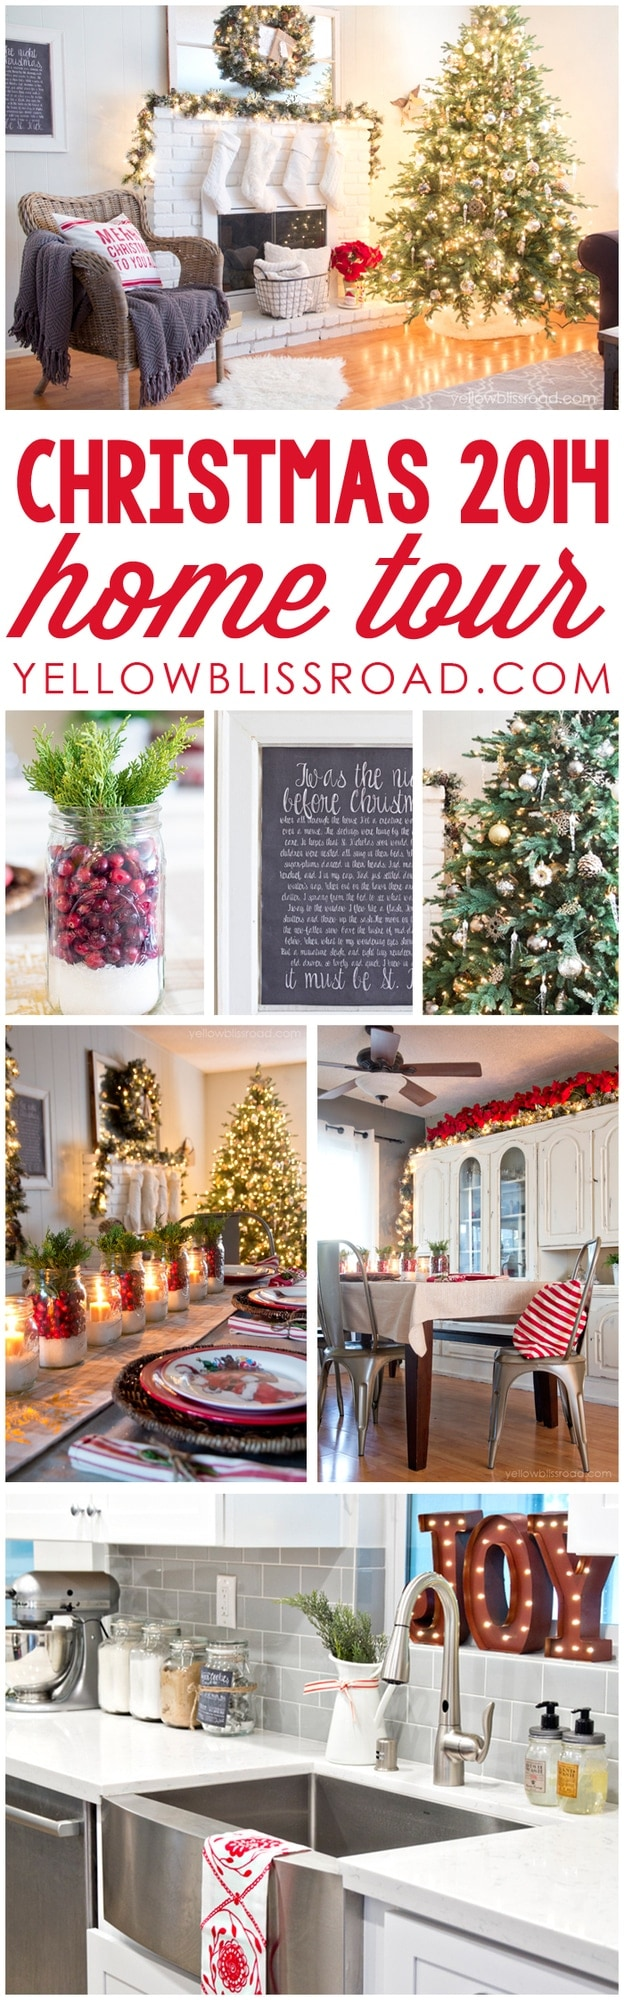 Christmas Home Tour 2014 at Yellow Bliss Road